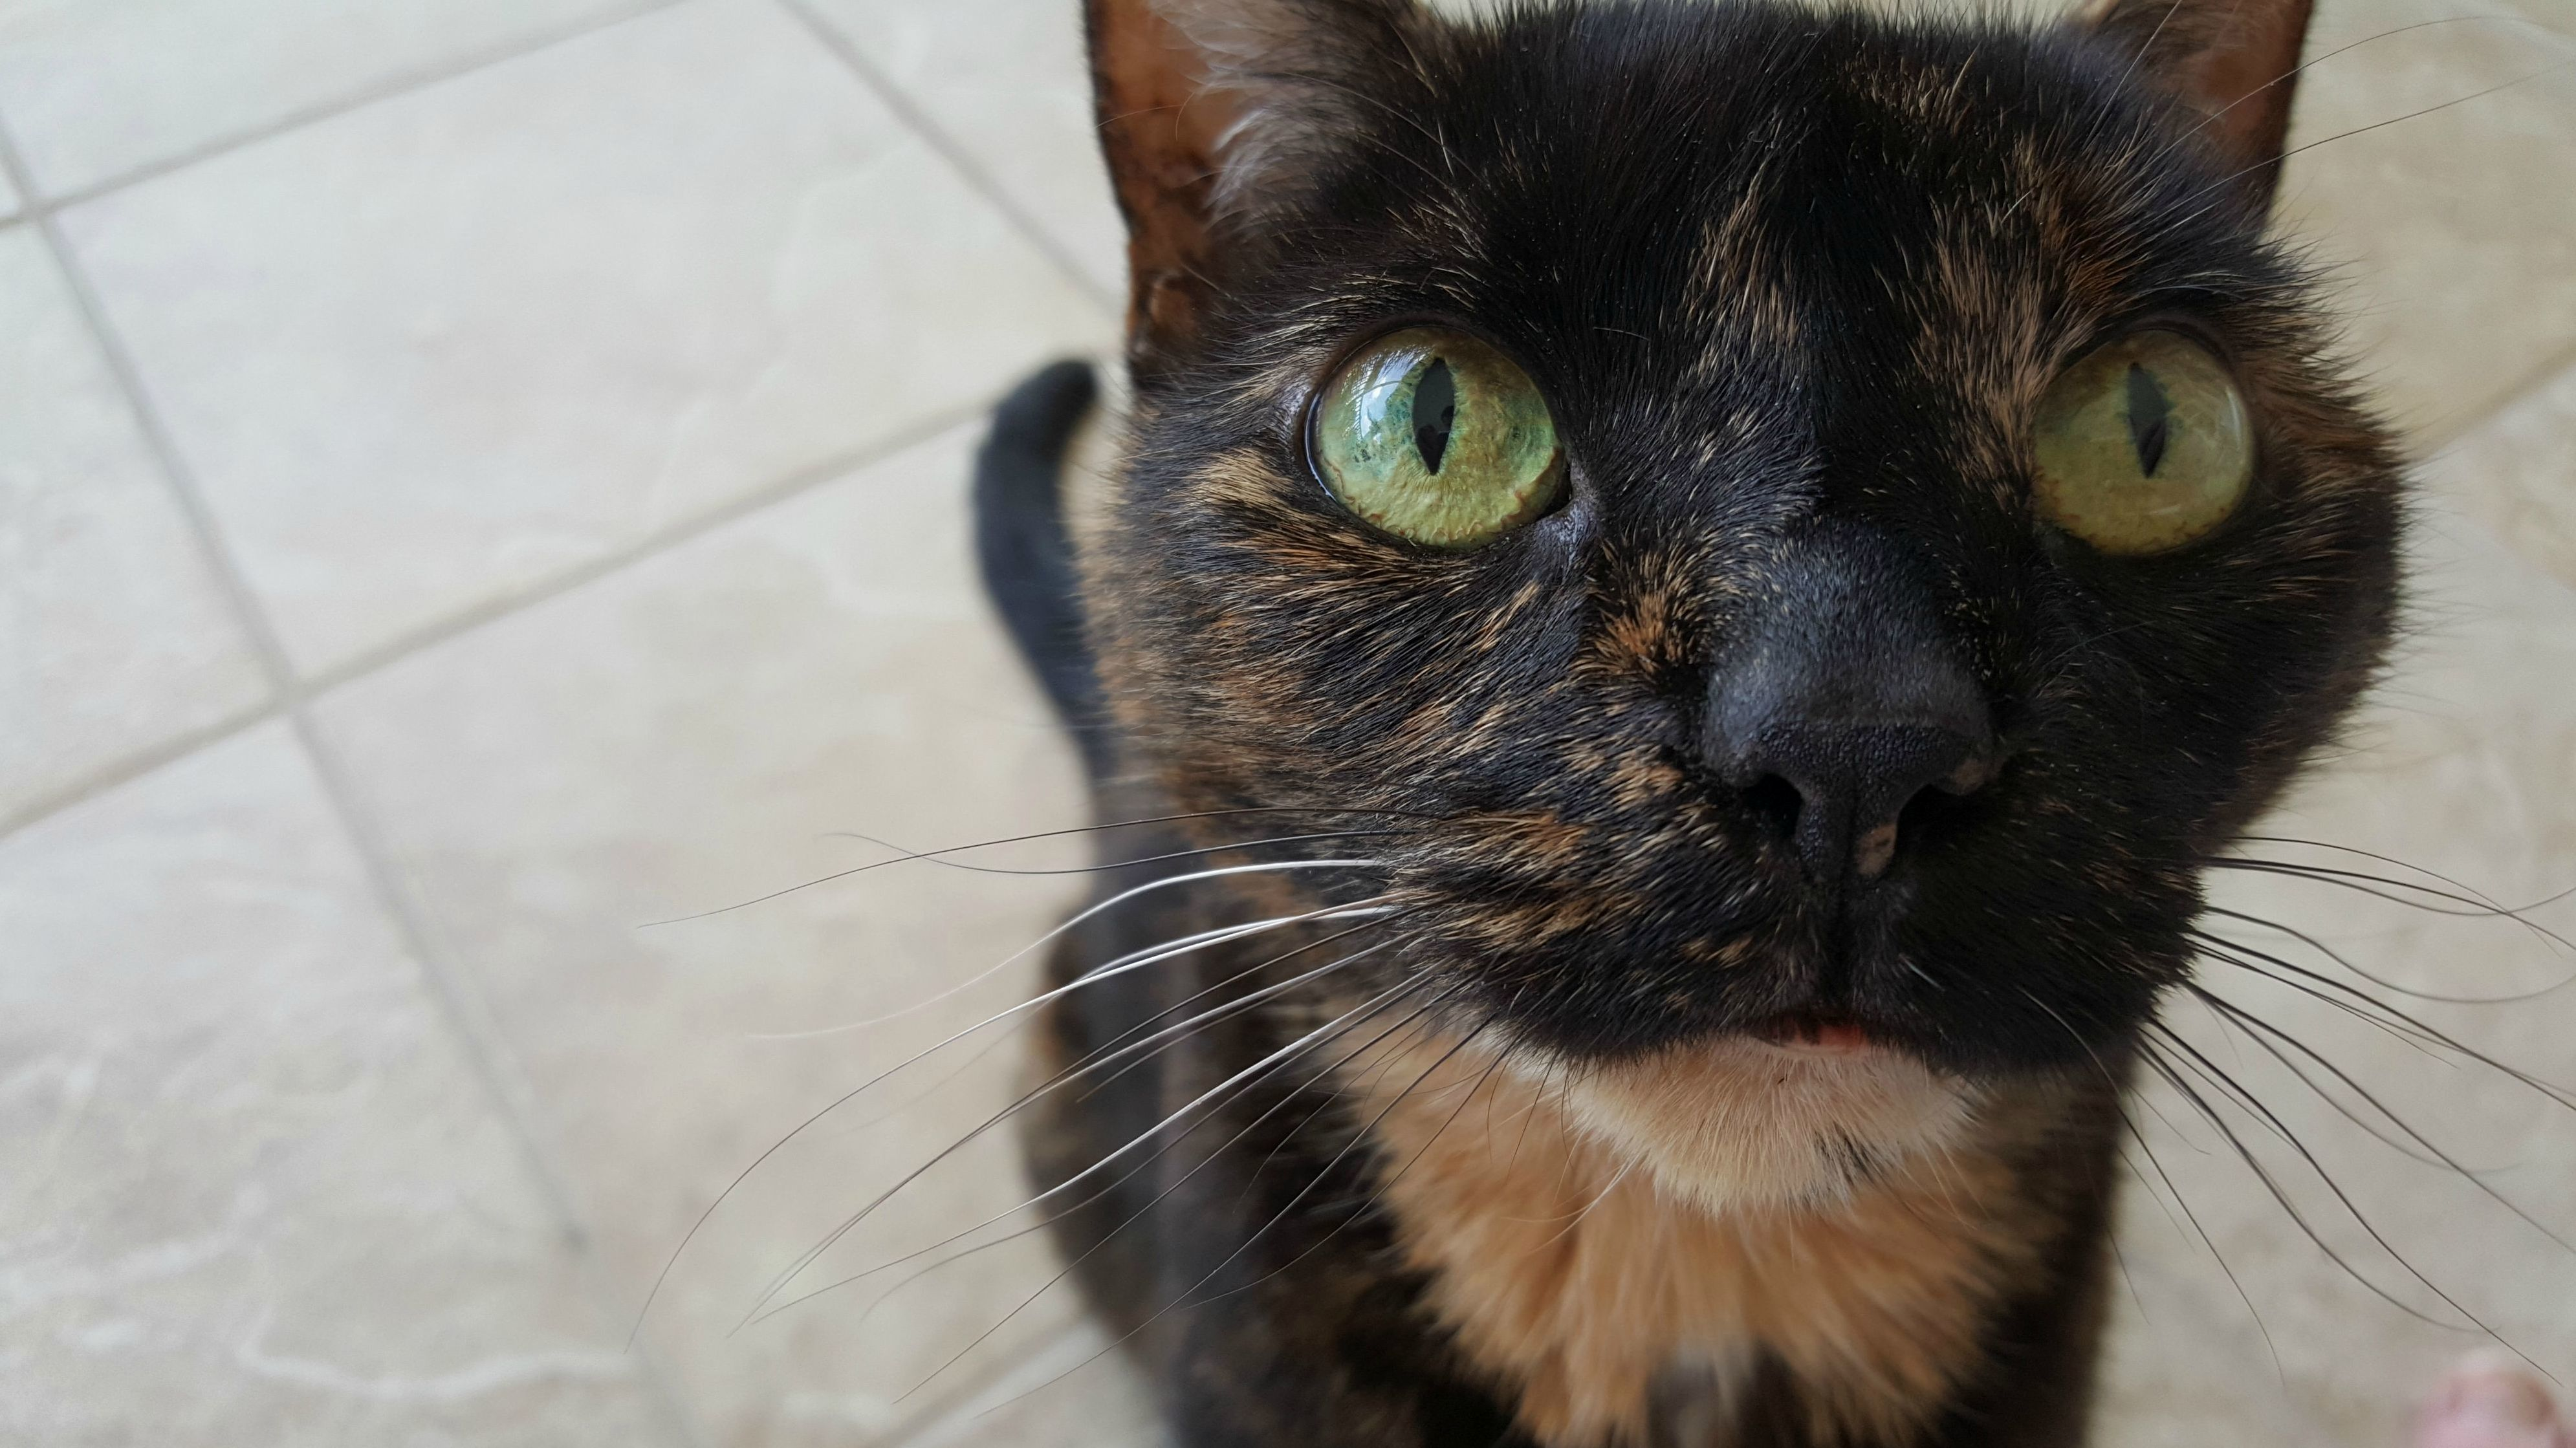 This is mocha. she is old and sick. but shes still a pretty girl.